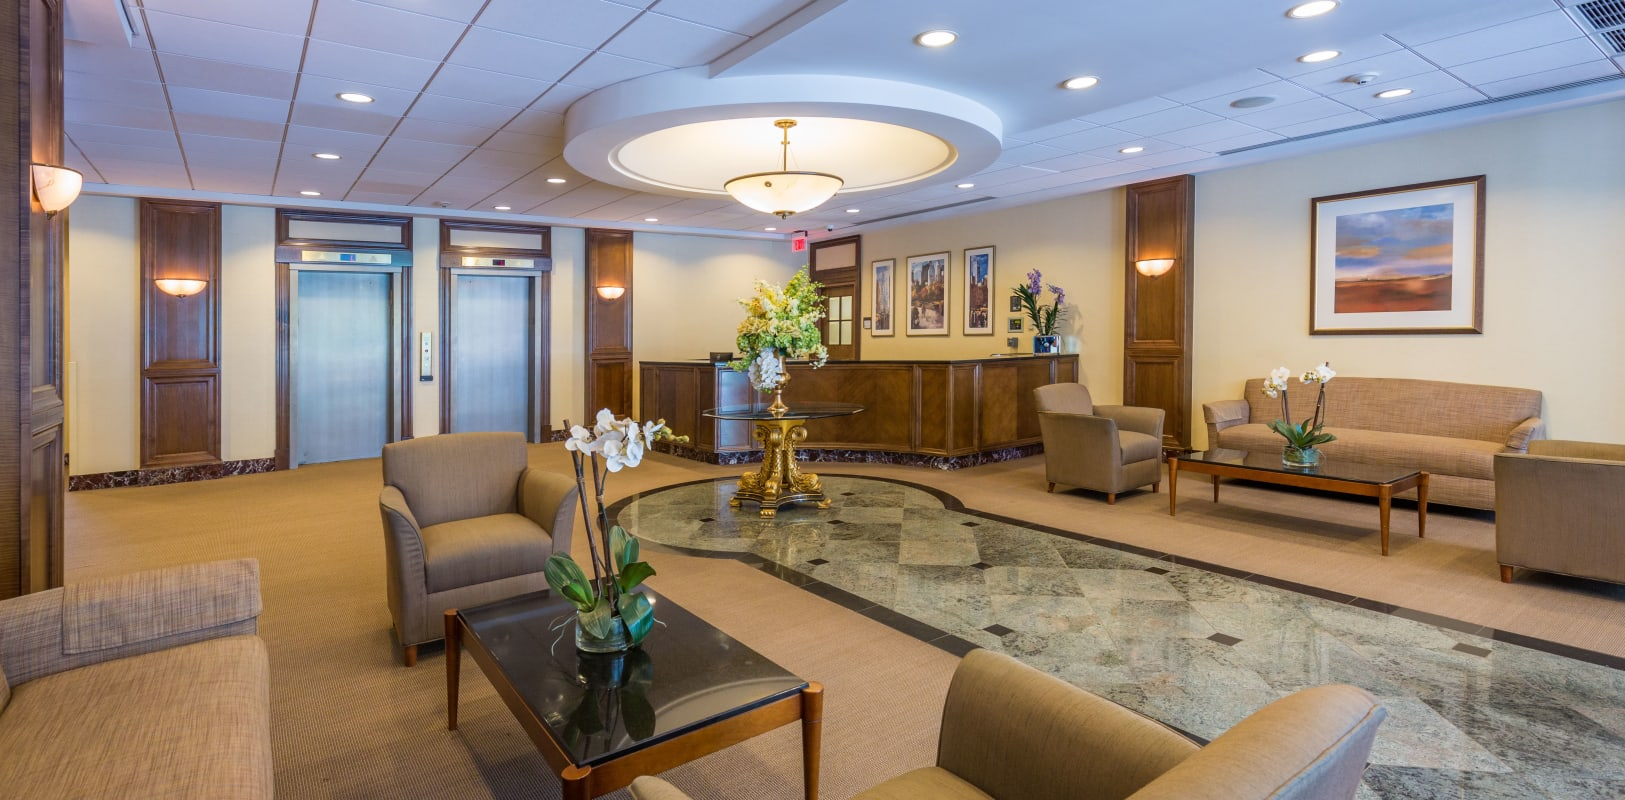 Tiled lobby walkway with modern furniture surrounded for residents to relax on at Nottingham Manor in Montvale, New Jersey